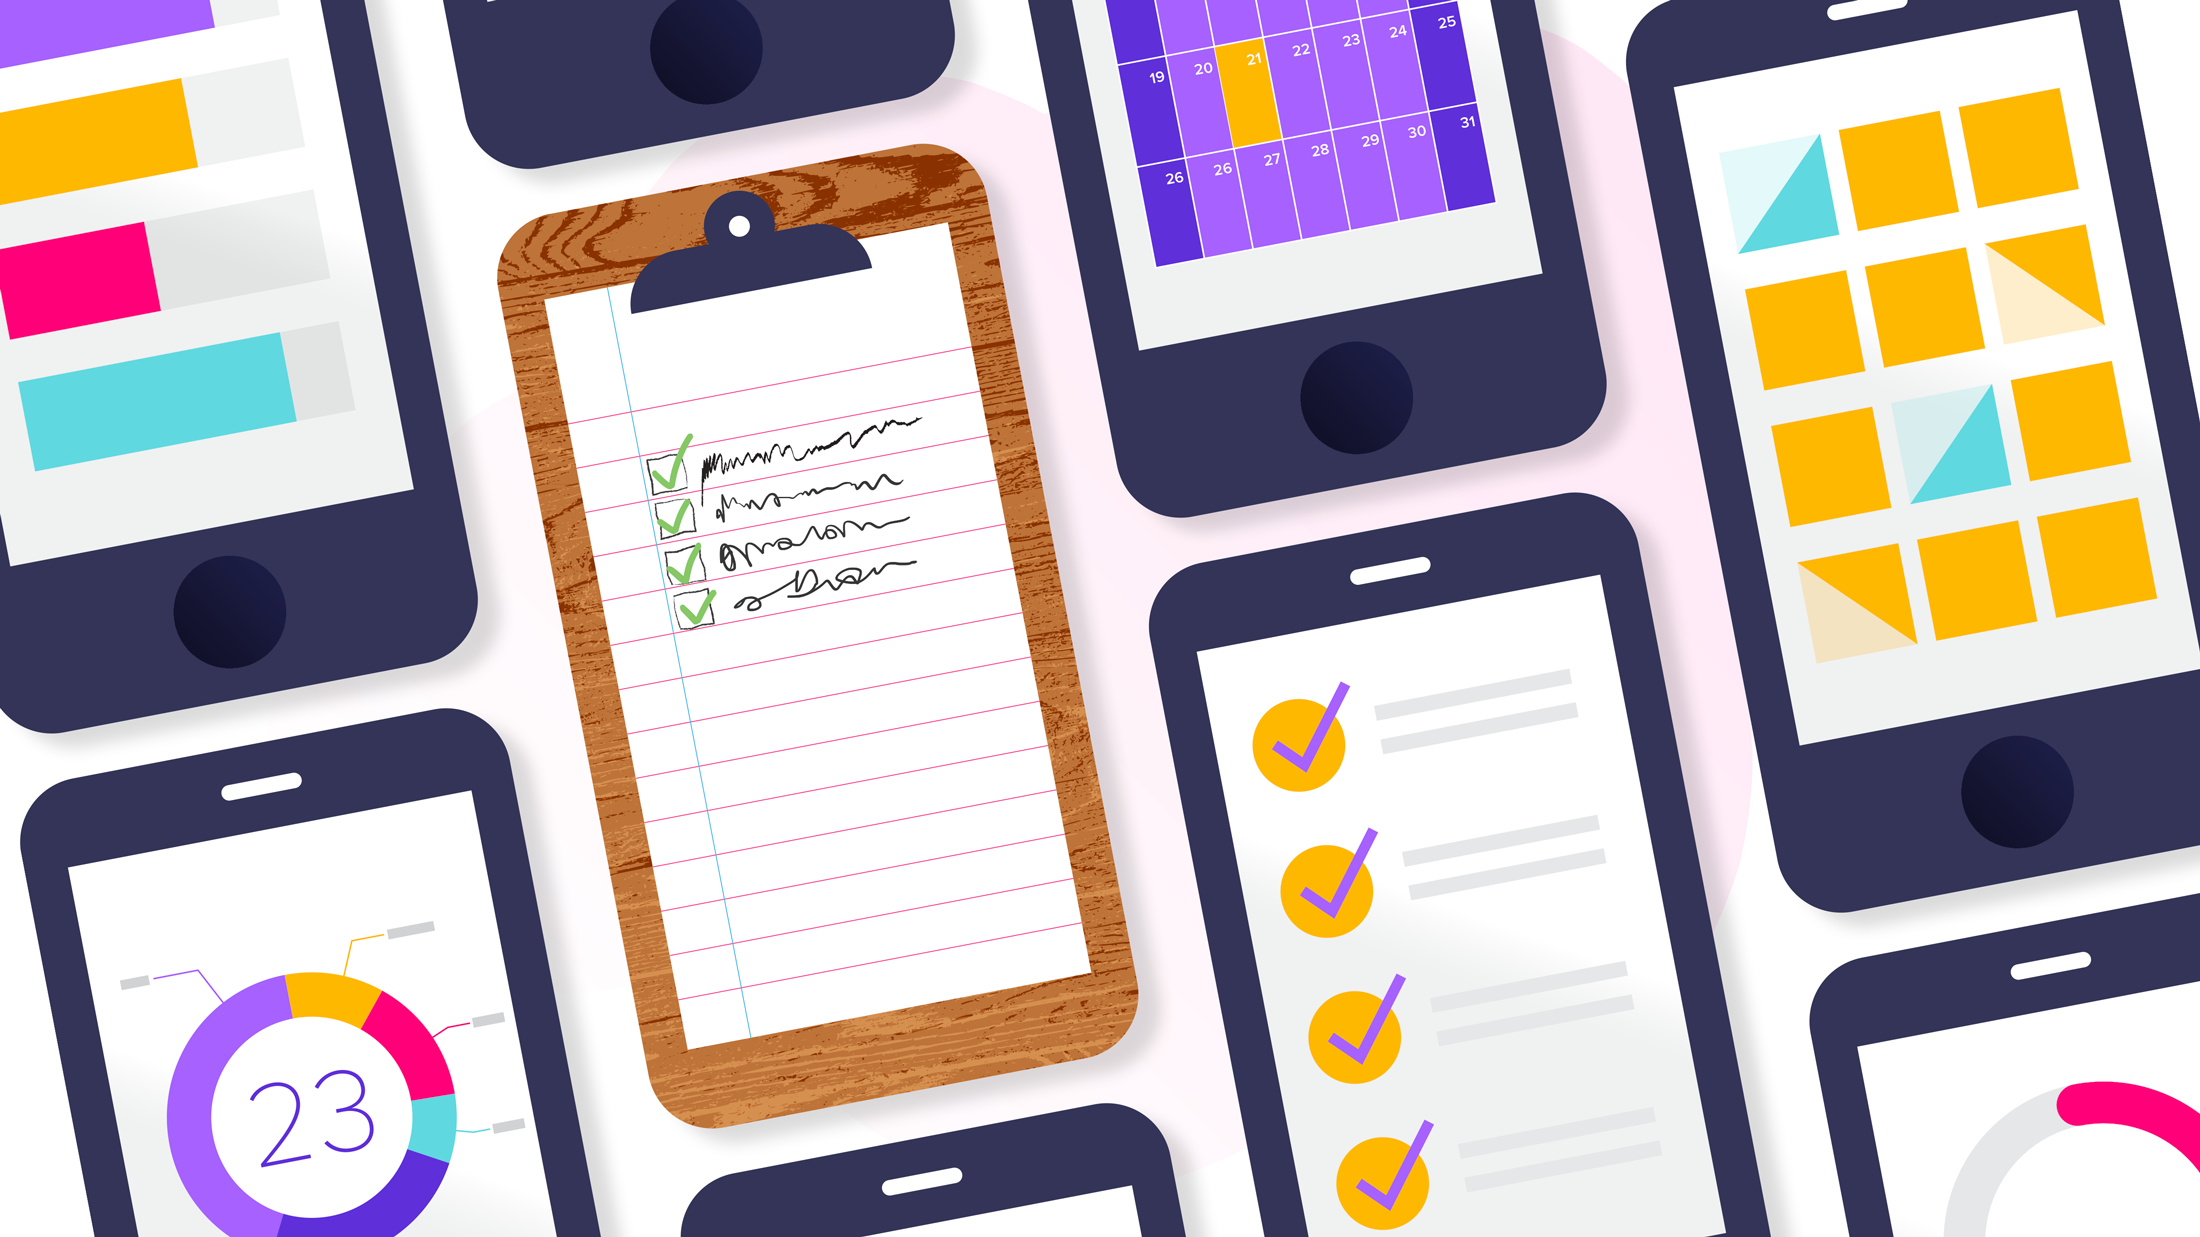 New Years resolutions 2019: Can habit tracking apps help you reach your goals?